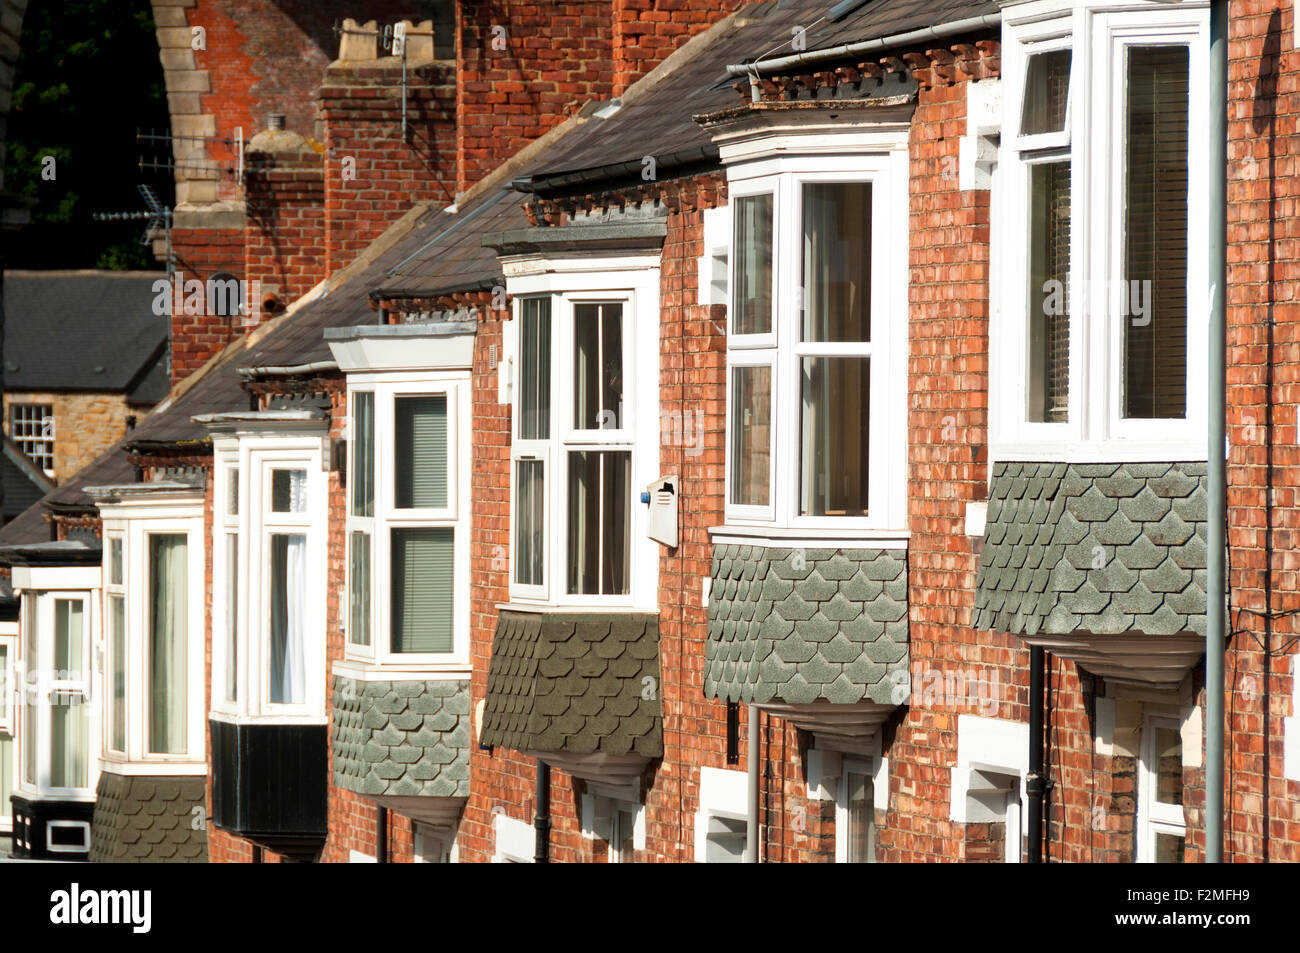 Oriel Windows On Terraced Houses On A Steeply Sloping Street, Atherton  Street, Durham City, England, UK